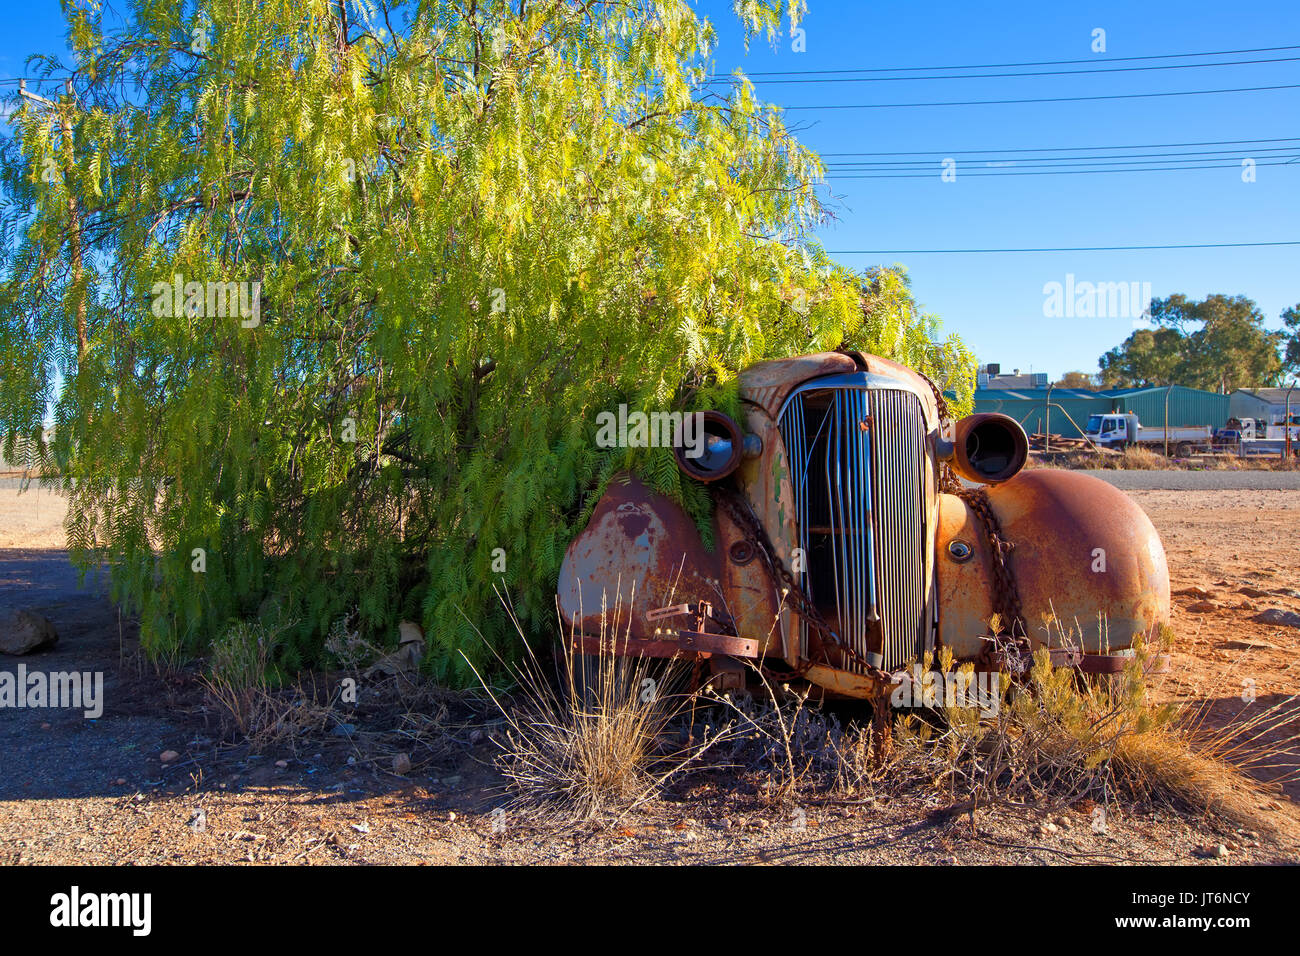 Long Term Parking Stock Photos Amp Long Term Parking Stock Images Alamy